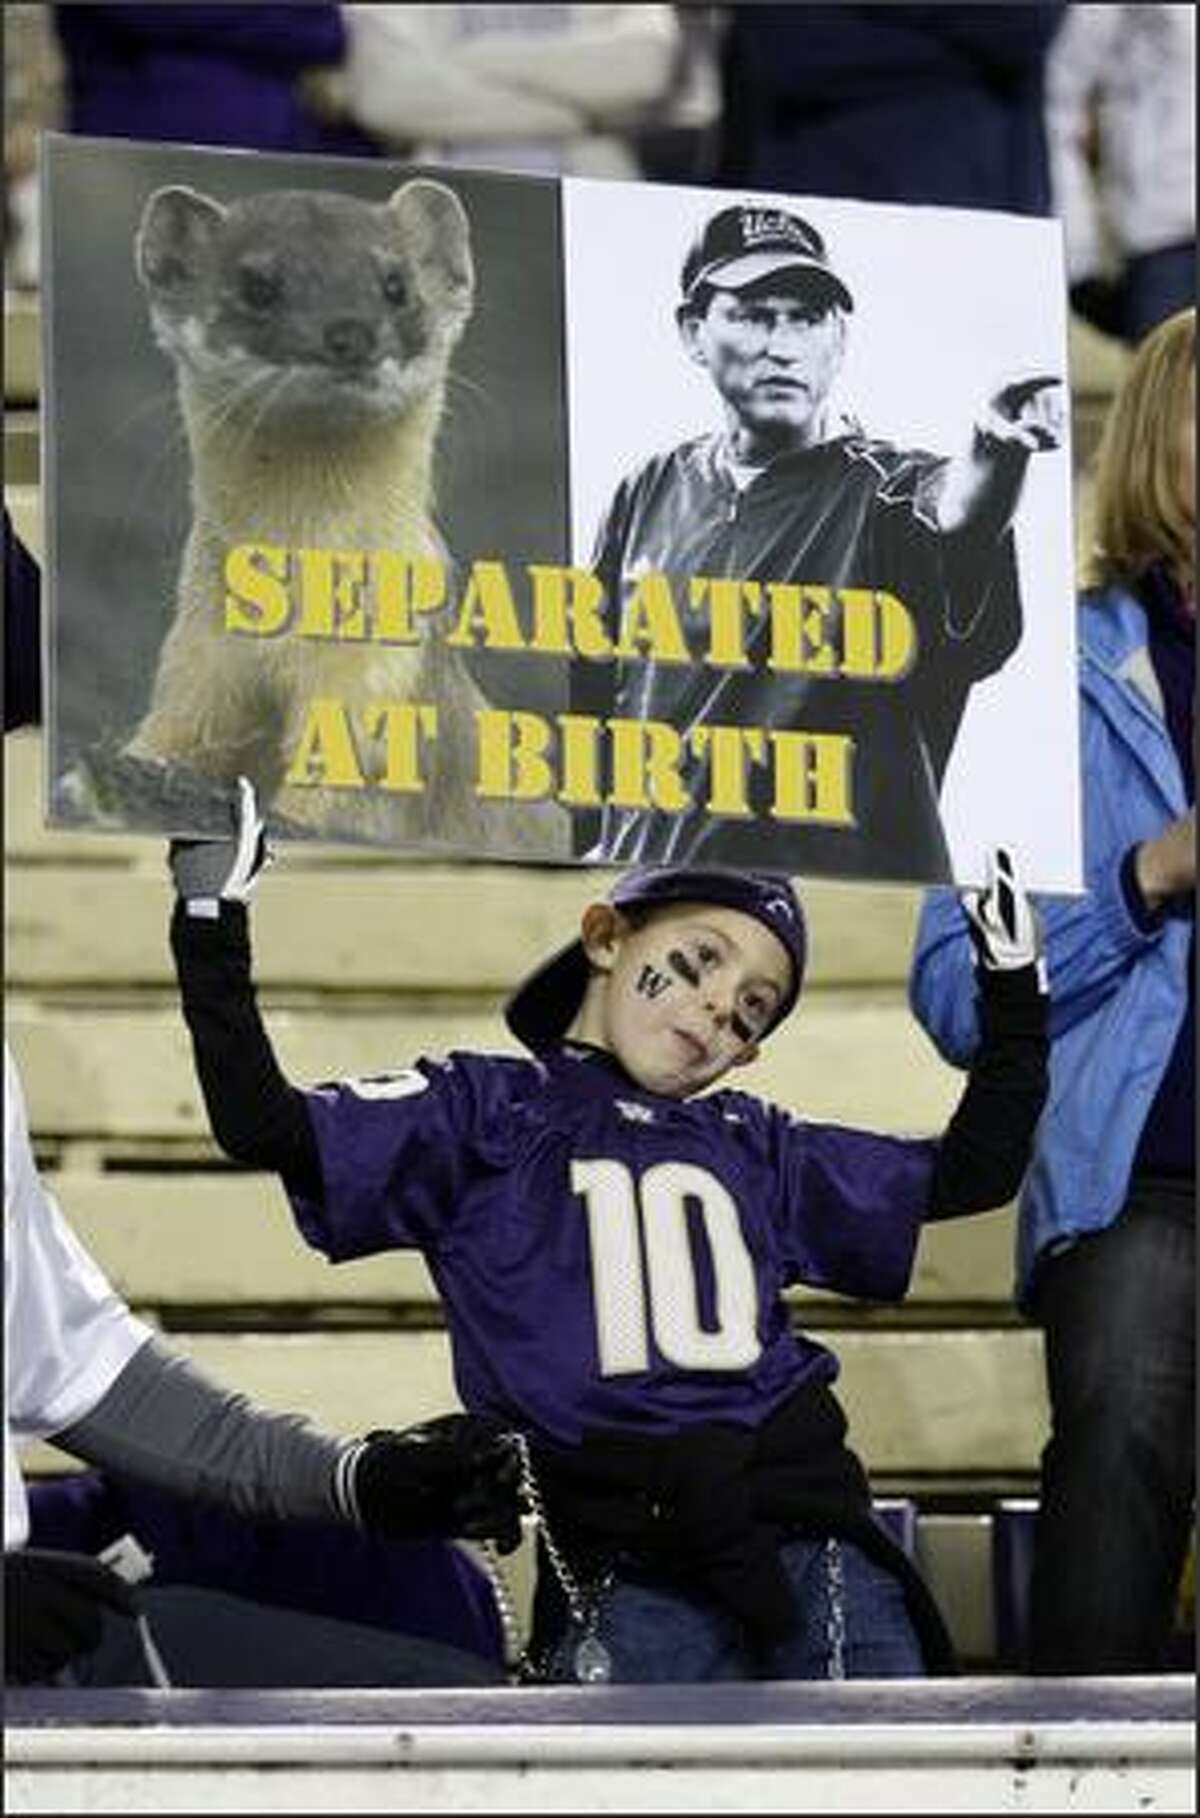 A Washington fan displays his distaste for UCLA head coach and former Washington coach Rick Neuheisel prior to the start of the game at Husky Stadium in Seattle on Saturday.